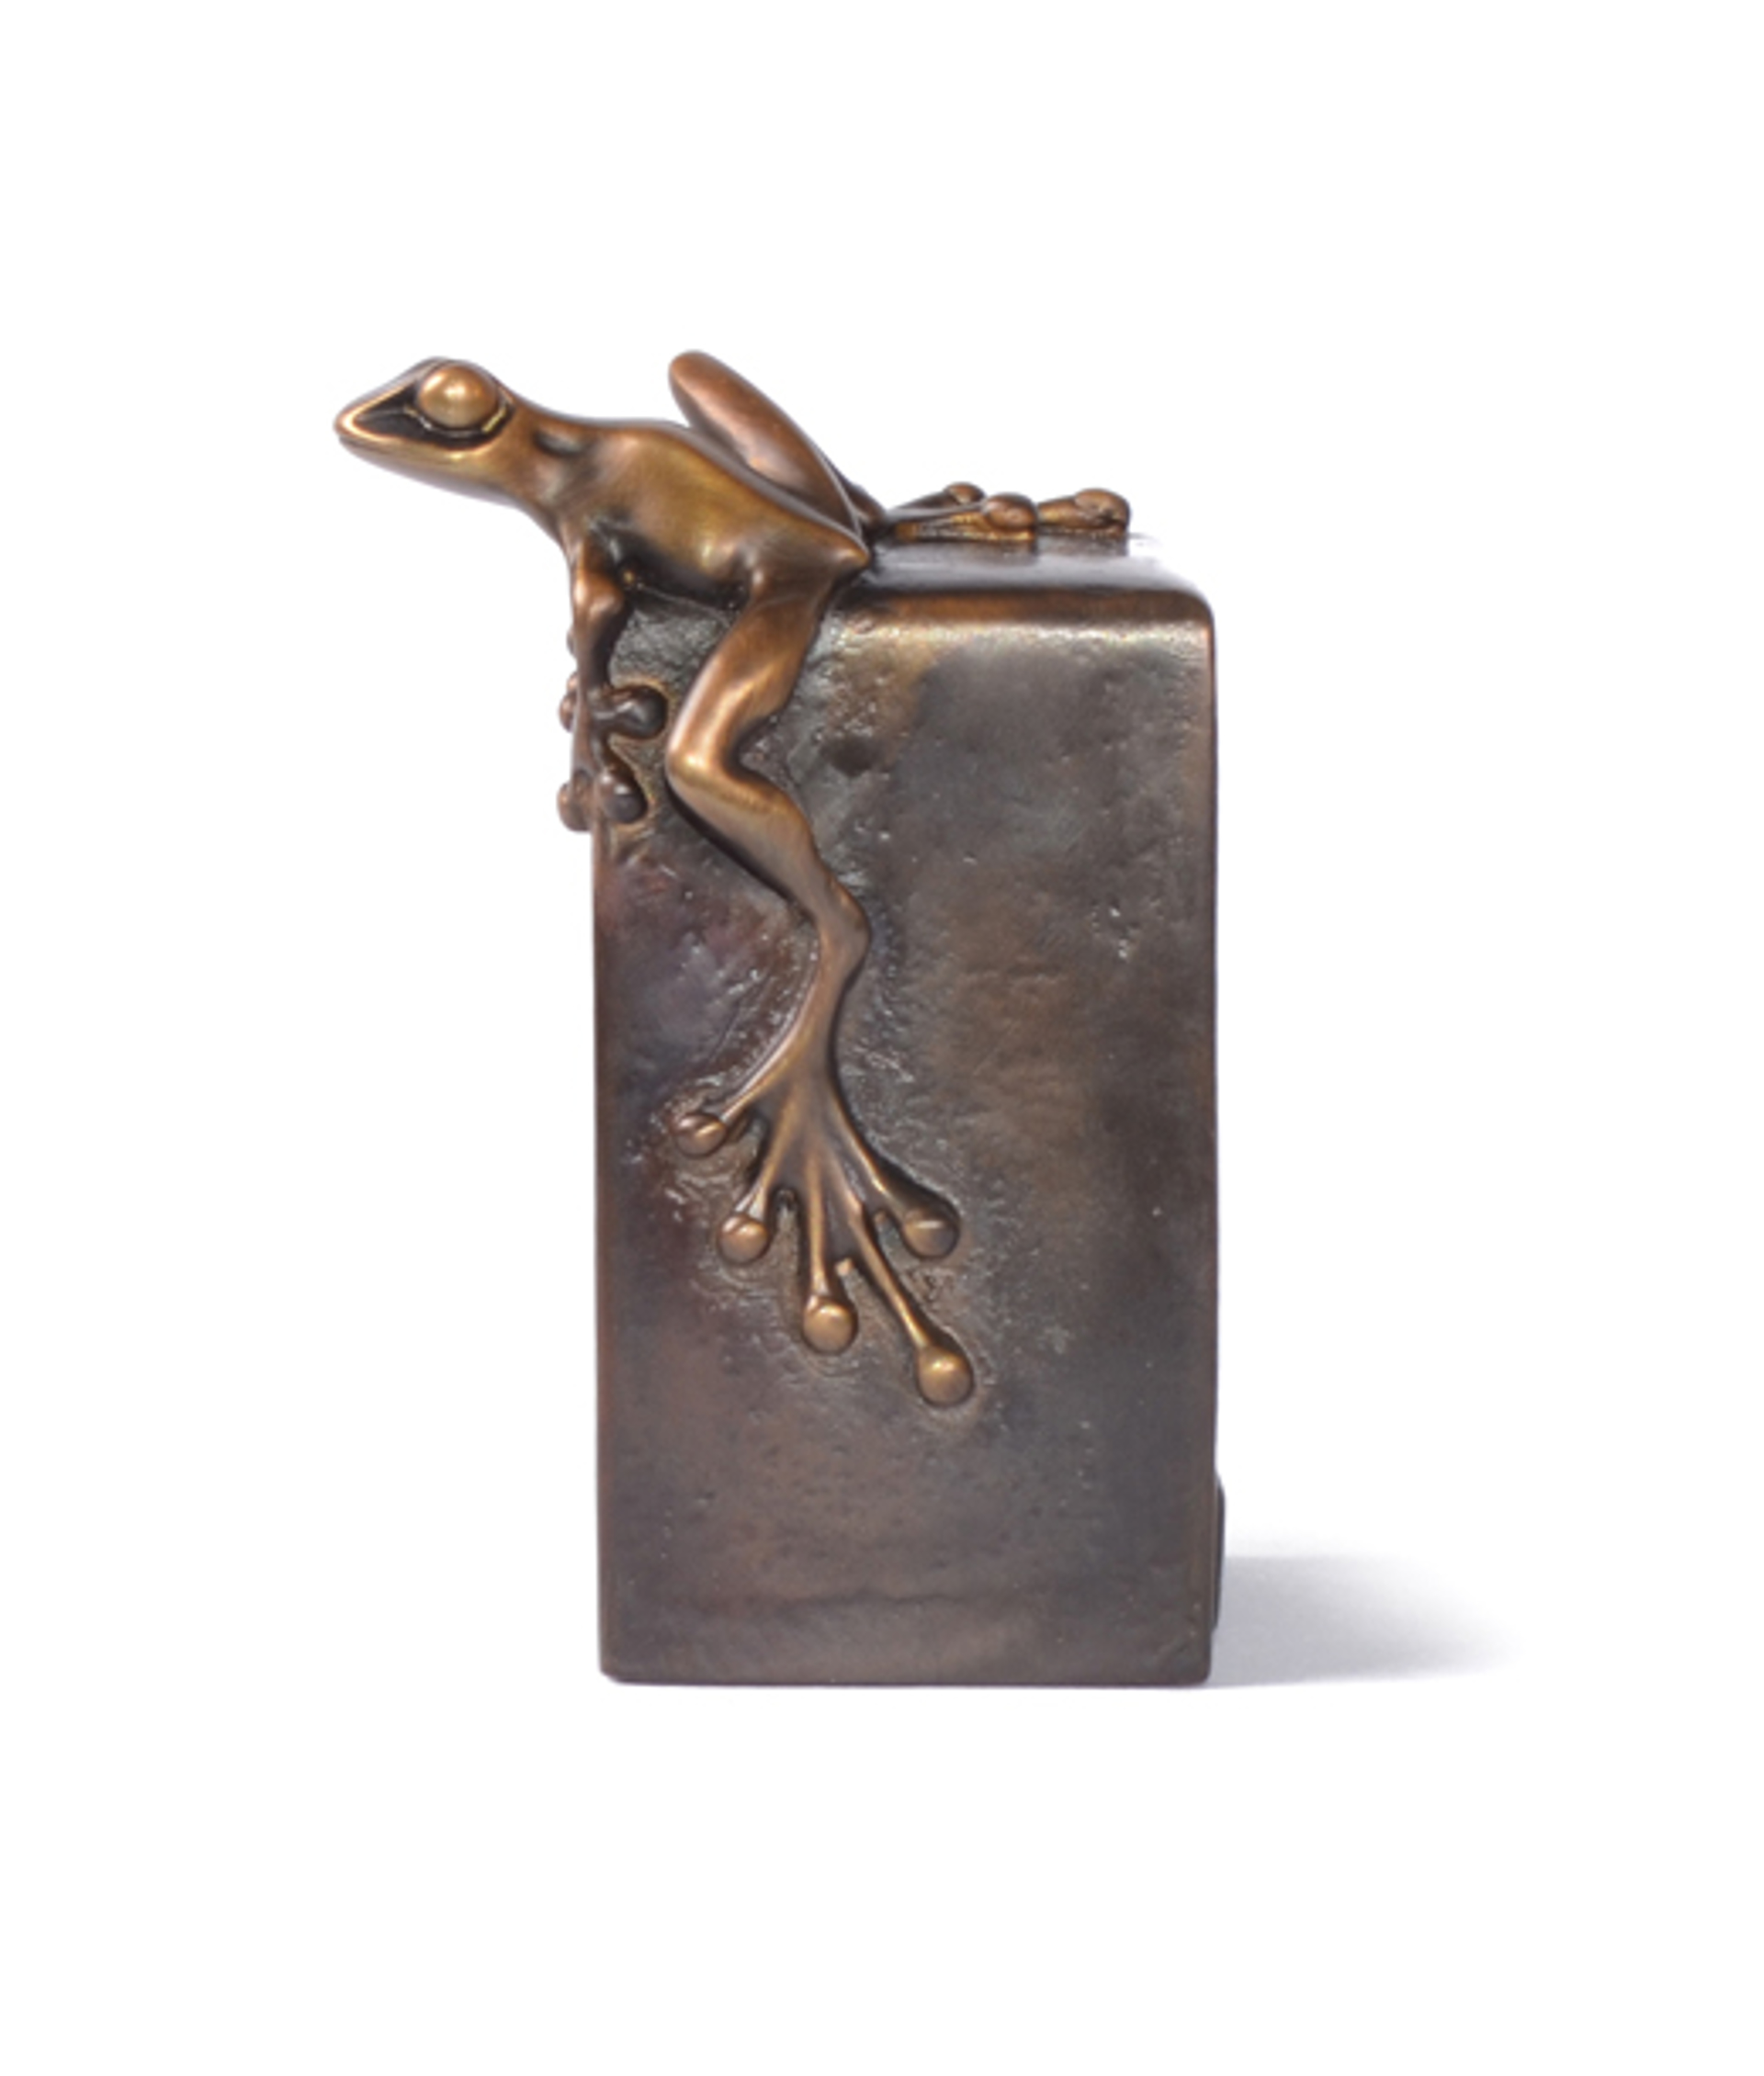 Paperweight Vertical by The Frogman